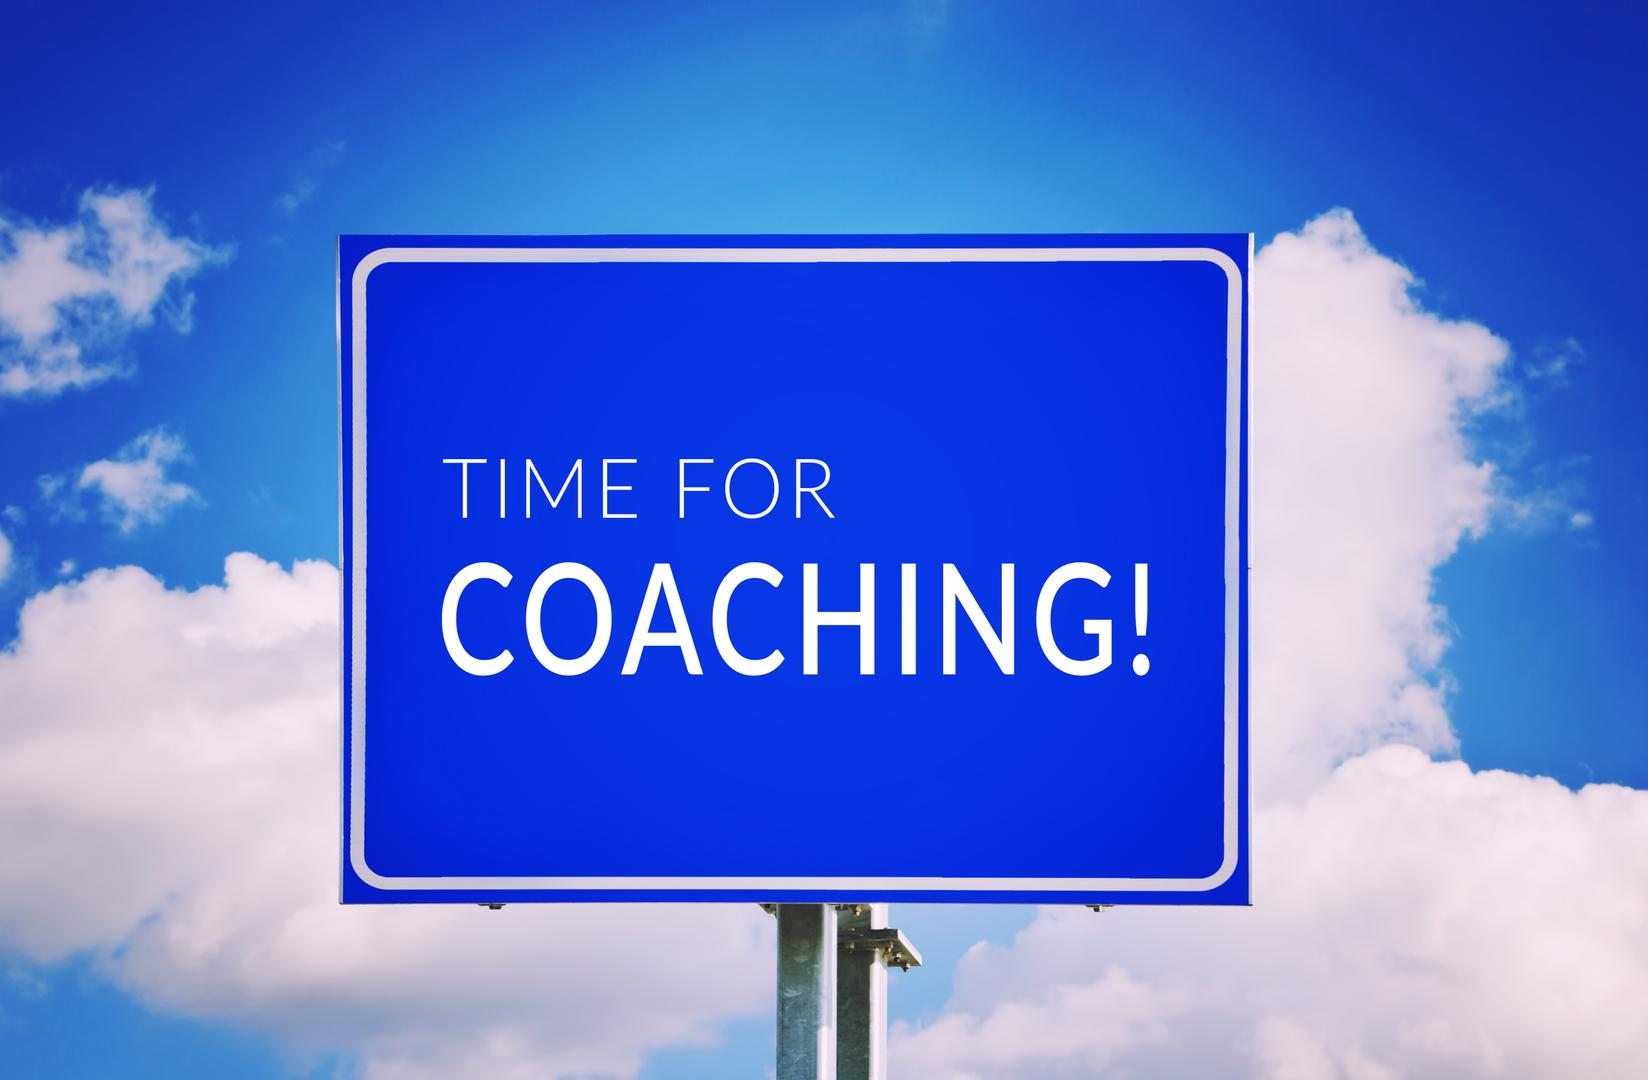 It is Time for Coaching bij Moraal Resultaatgericht Coachen in Berkel en Rodenrijs (Lansingerland bij Rotterdam). Arnoud Moraal, personal, life en business coach. Ervaren NLP, Transactionele Analyse (TA) en Mindfulness coach